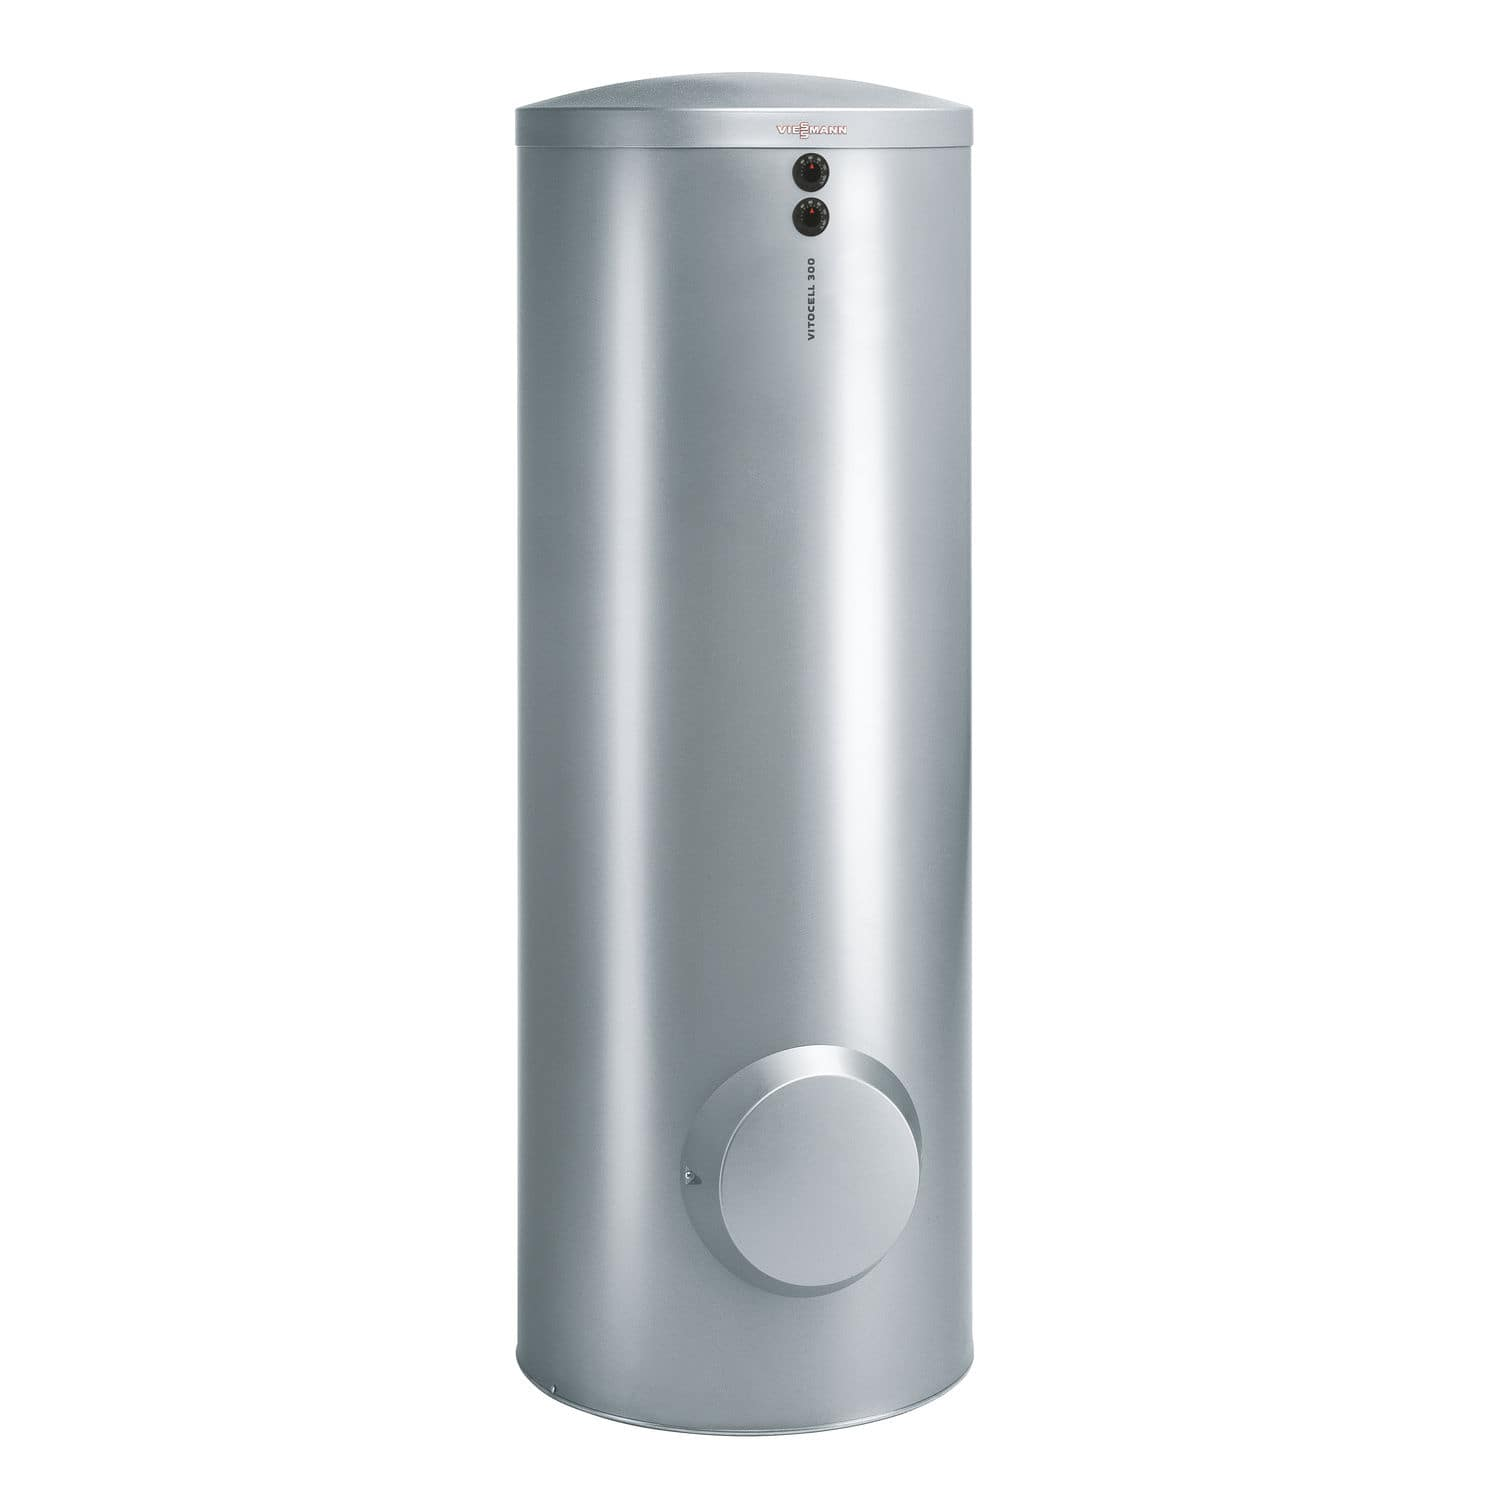 Floor hot water cylinder / vertical / residential / commercial ...